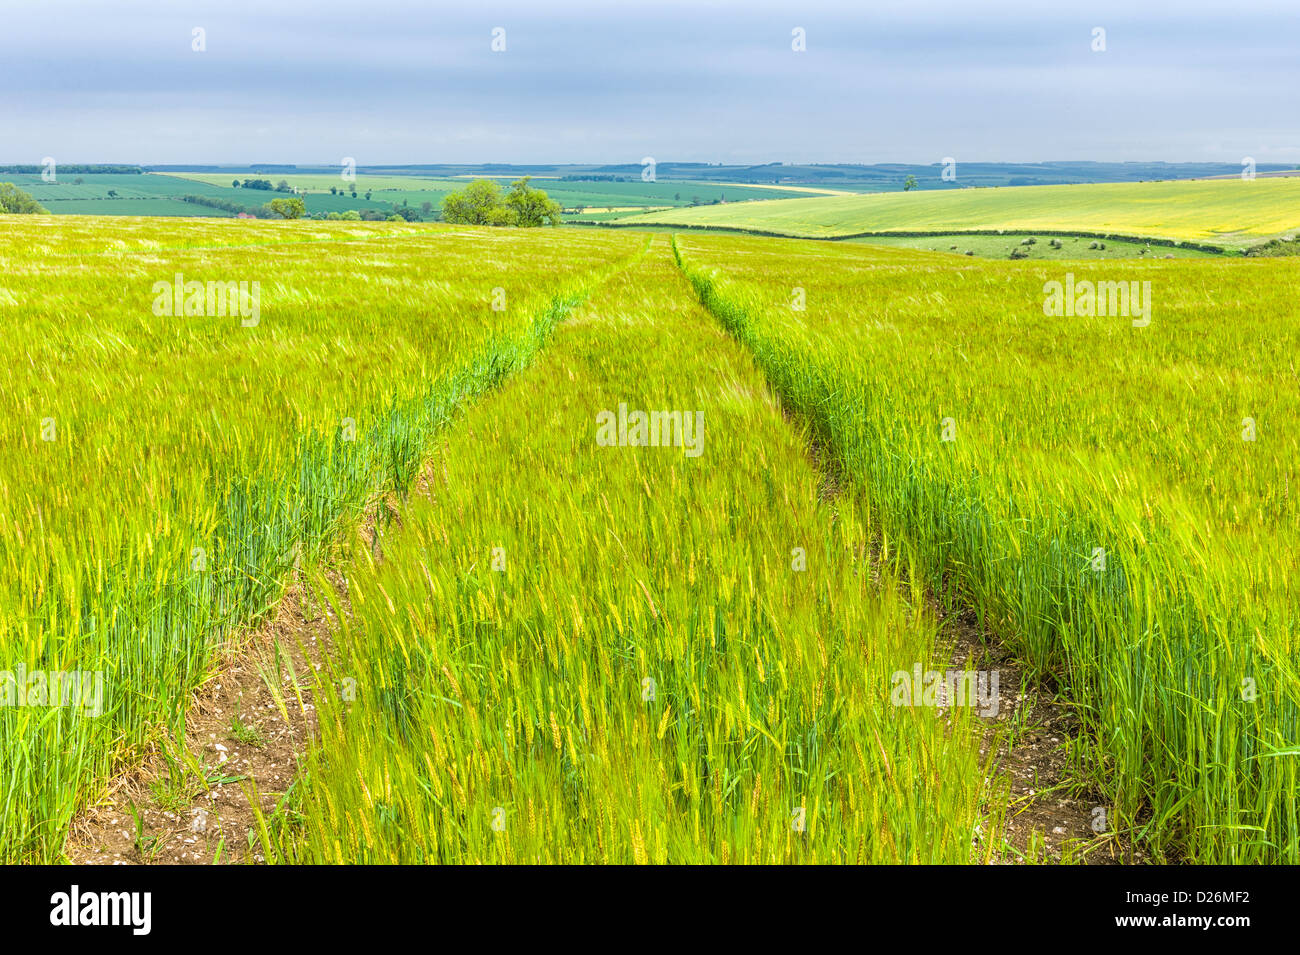 Wheat field in spring time in the Yorkshire Wolds near the town of Beverley, Yorkshire, UK. It is a bright sunny - Stock Image